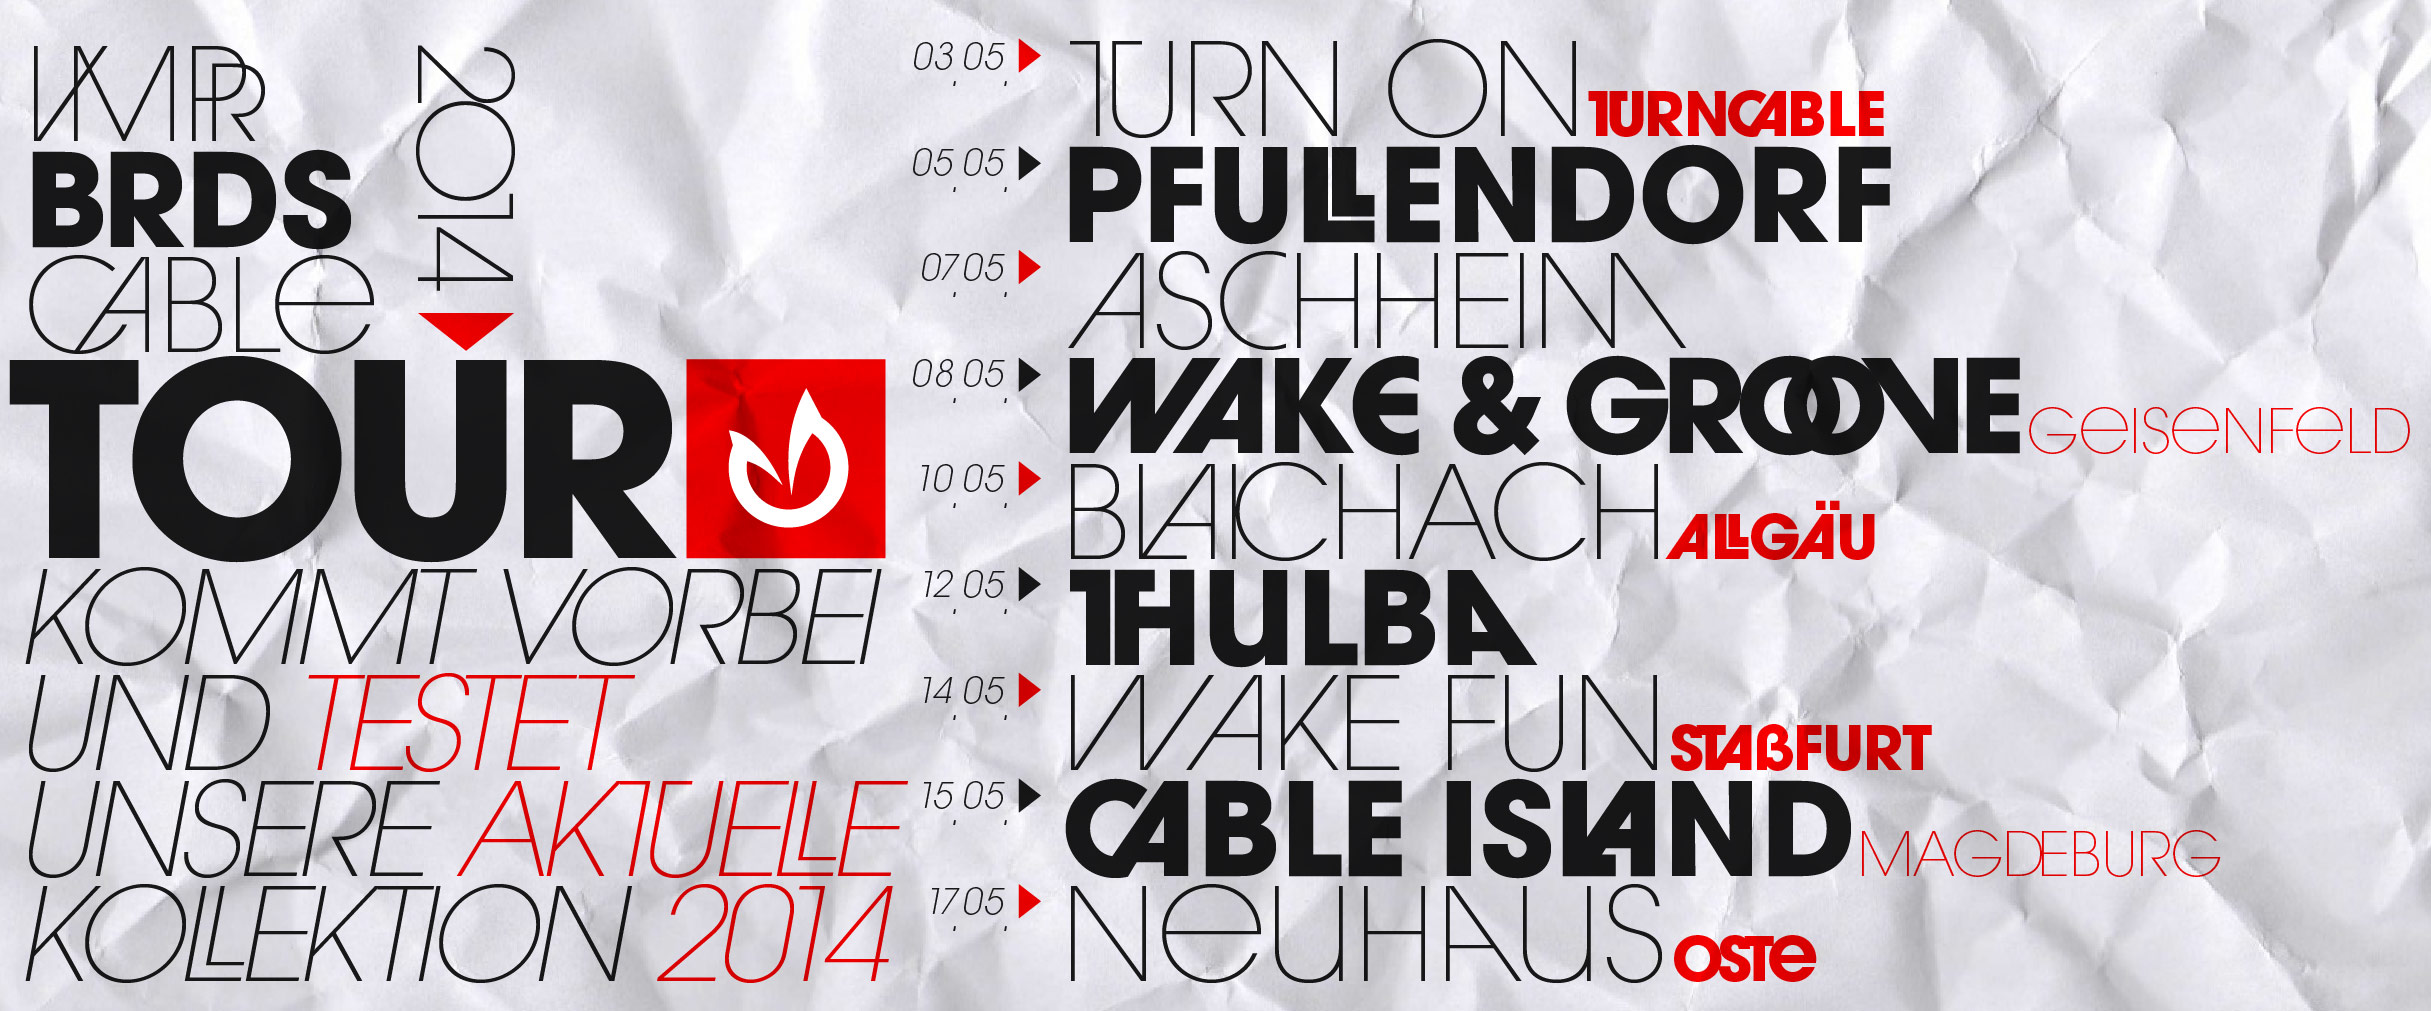 Vampire Boards 2014 Cable Tour - Graphic Design / Online Flyer